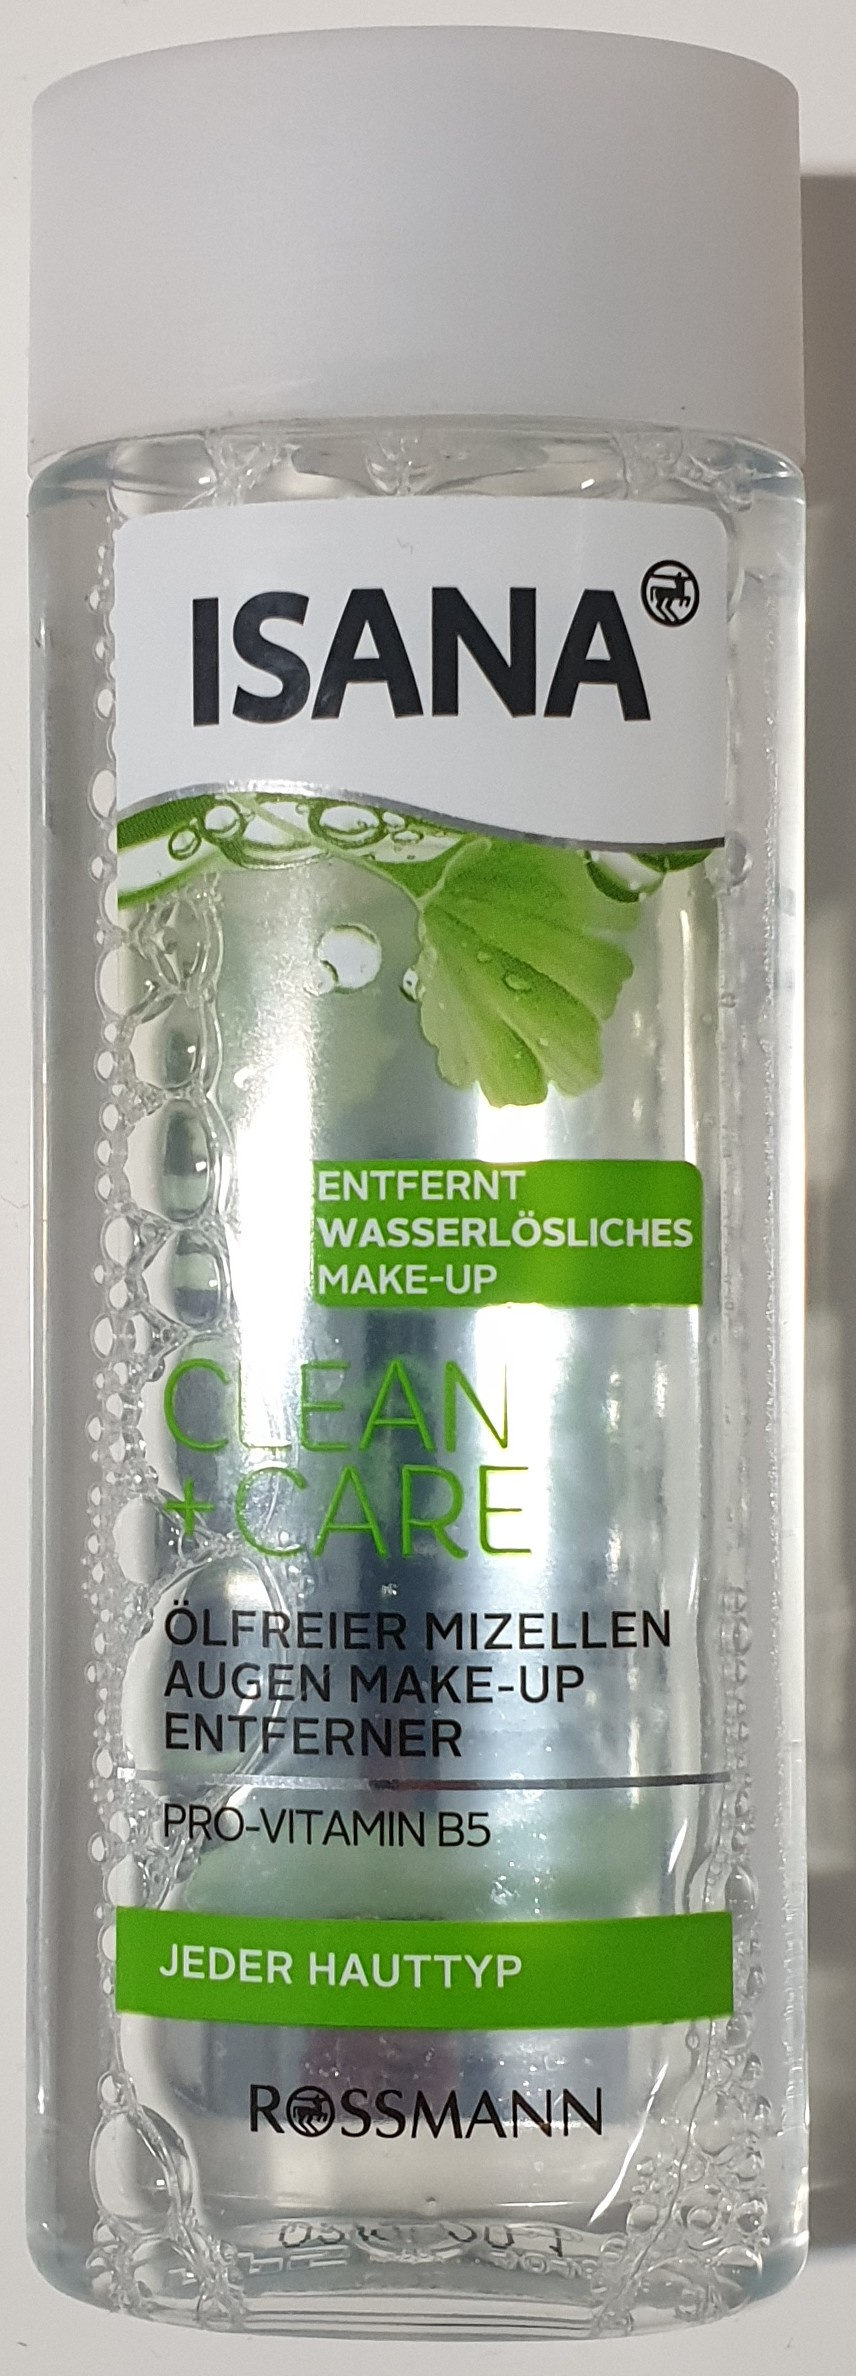 Clean Care ölfreier Mizellen Augen Make-up Entferner - Product